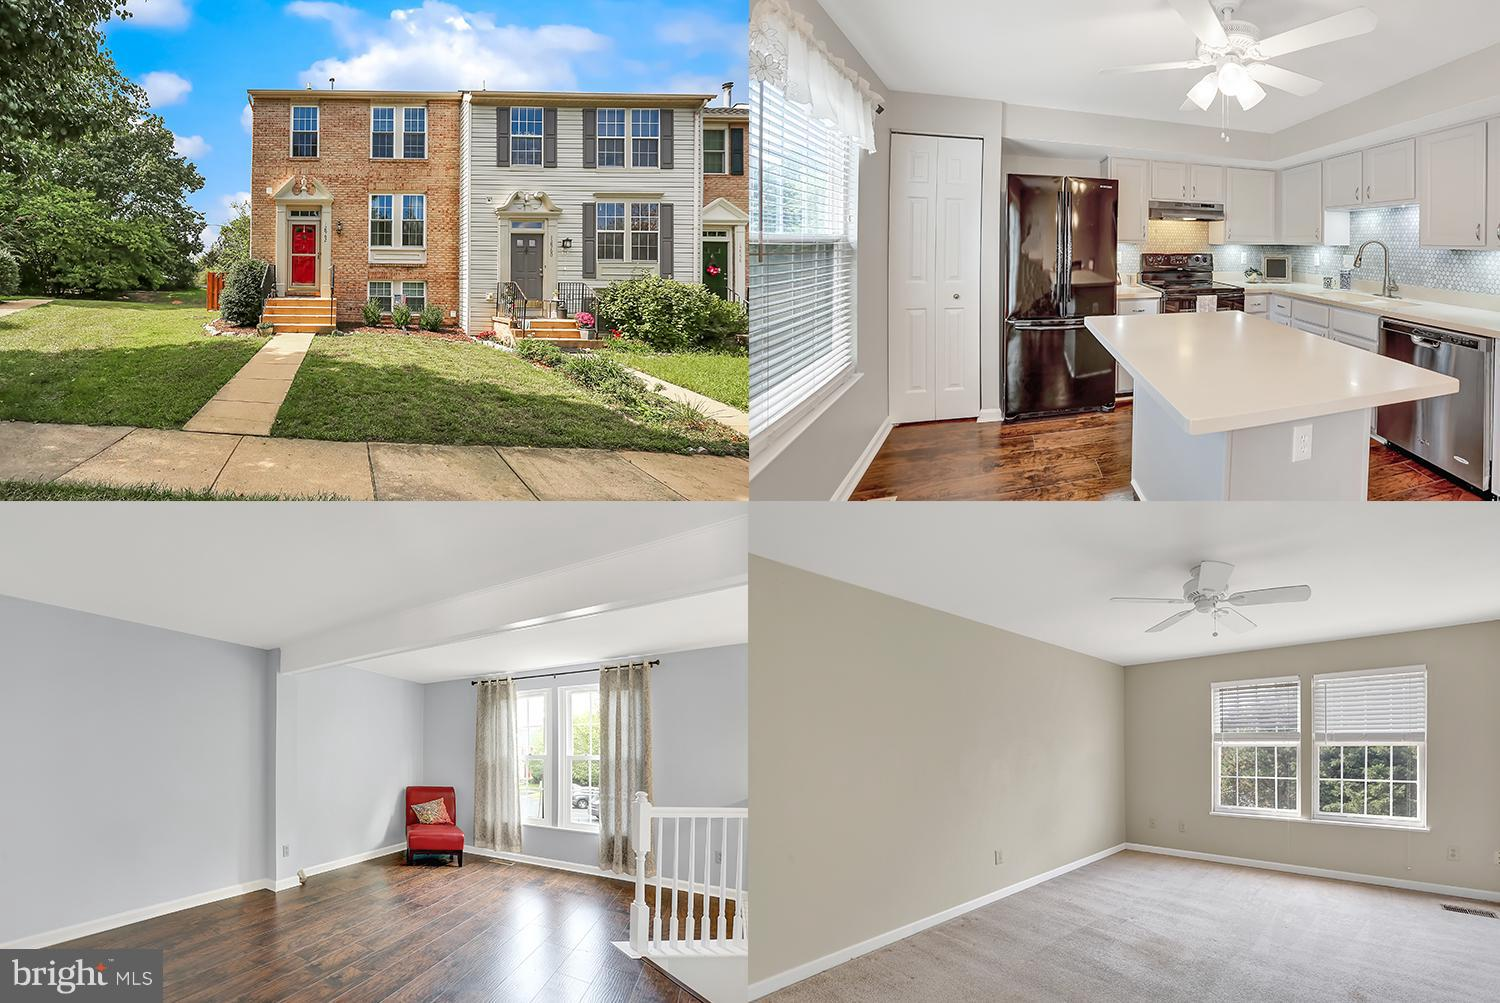 Beautiful brick front, end unit townhouse with tons of natural light in sought after Old Bridge Estates, offers hardwood floors and updated kitchen on main level with french doors leading to large deck. The lower level features  a finished rec room with a charming gas fireplace and walkup to a massive stamped patio for entertaining. Storage RM Backs to trees for privacy. Great commuter location!